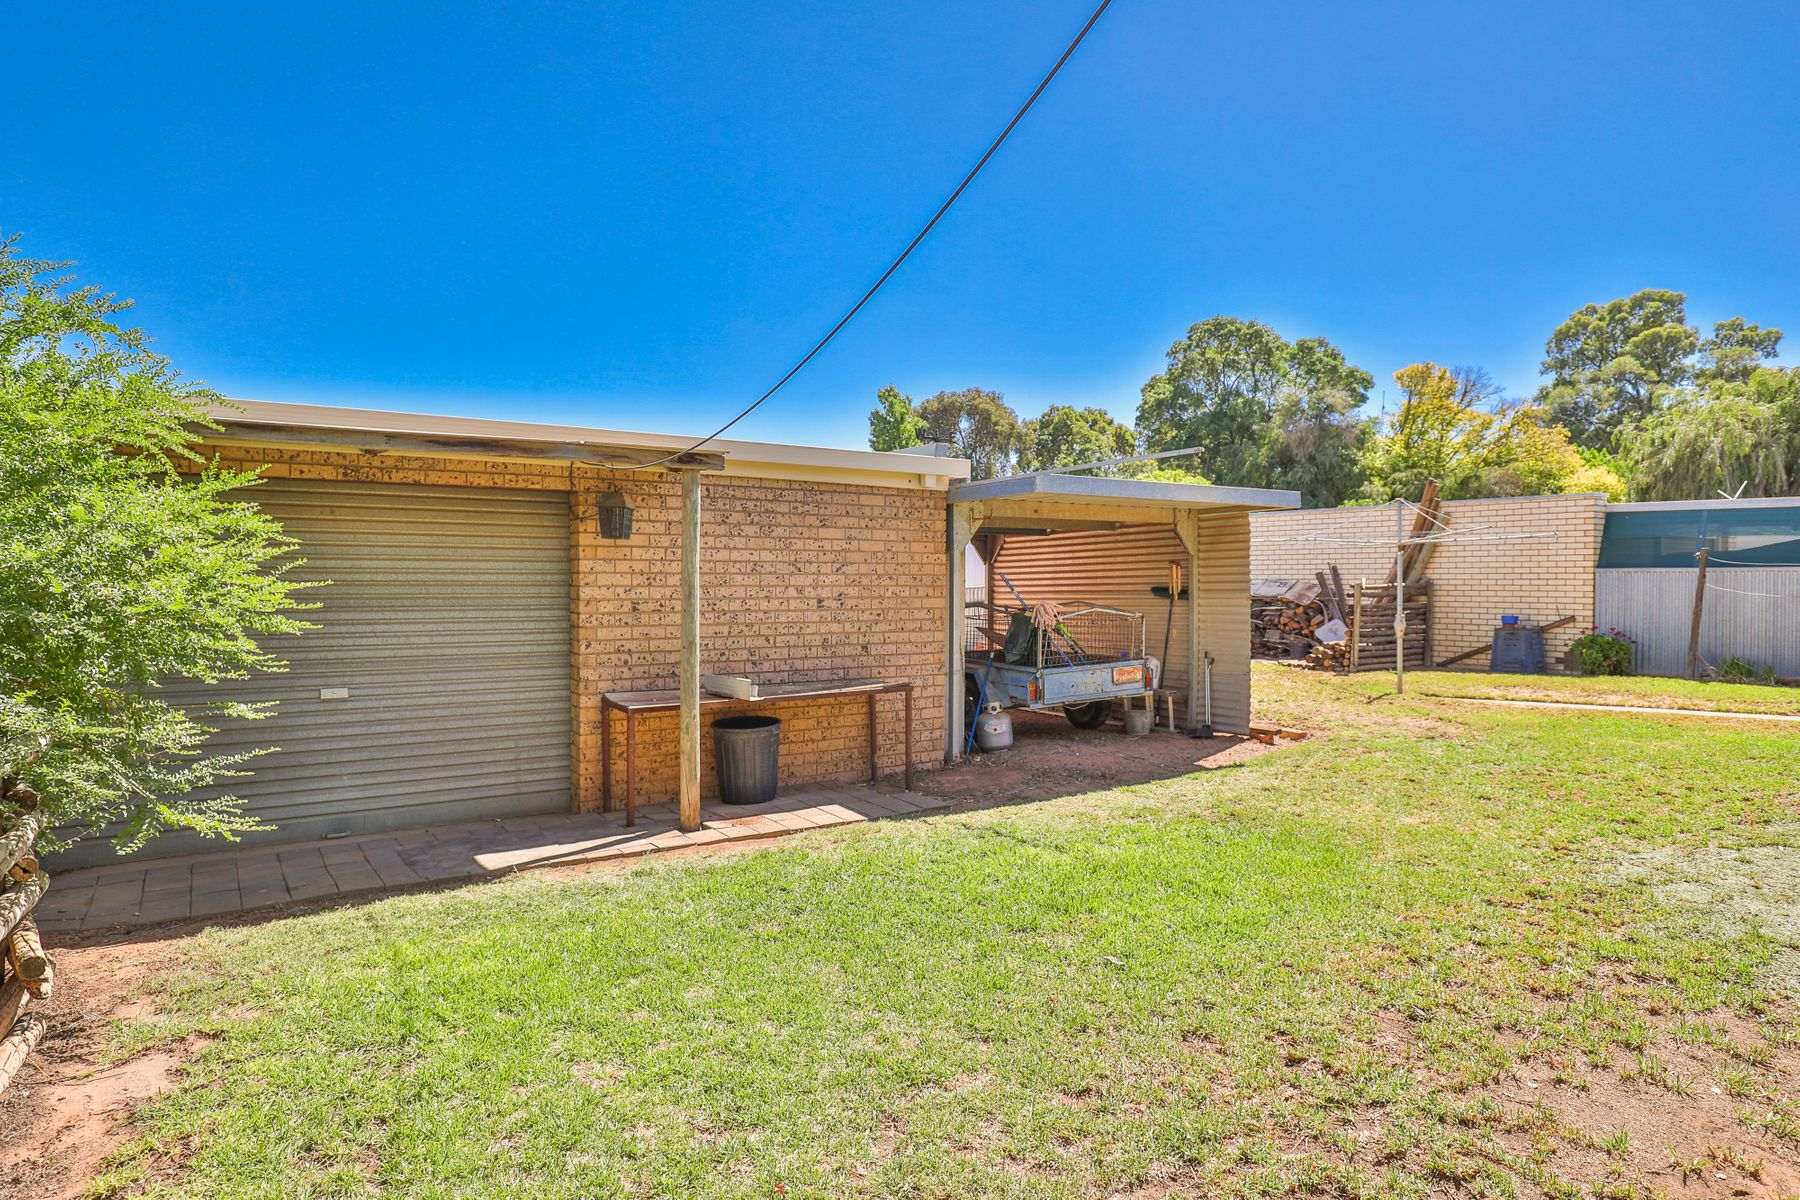 9 Snowy Avenue, Red Cliffs, VIC 3496